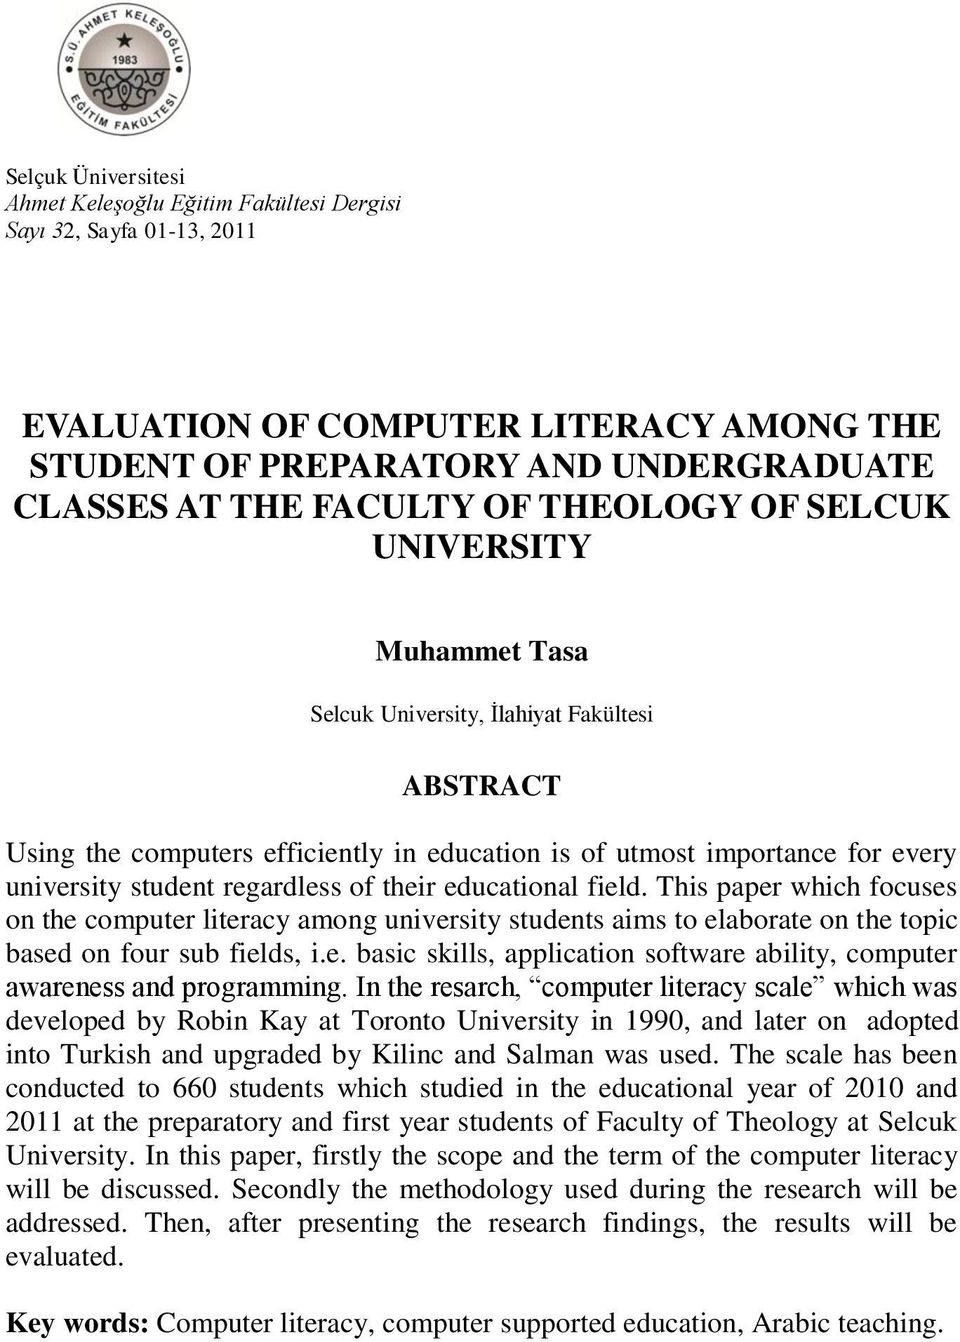 of their educational field. This paper which focuses on the computer literacy among university students aims to elaborate on the topic based on four sub fields, i.e. basic skills, application software ability, computer awareness and programming.